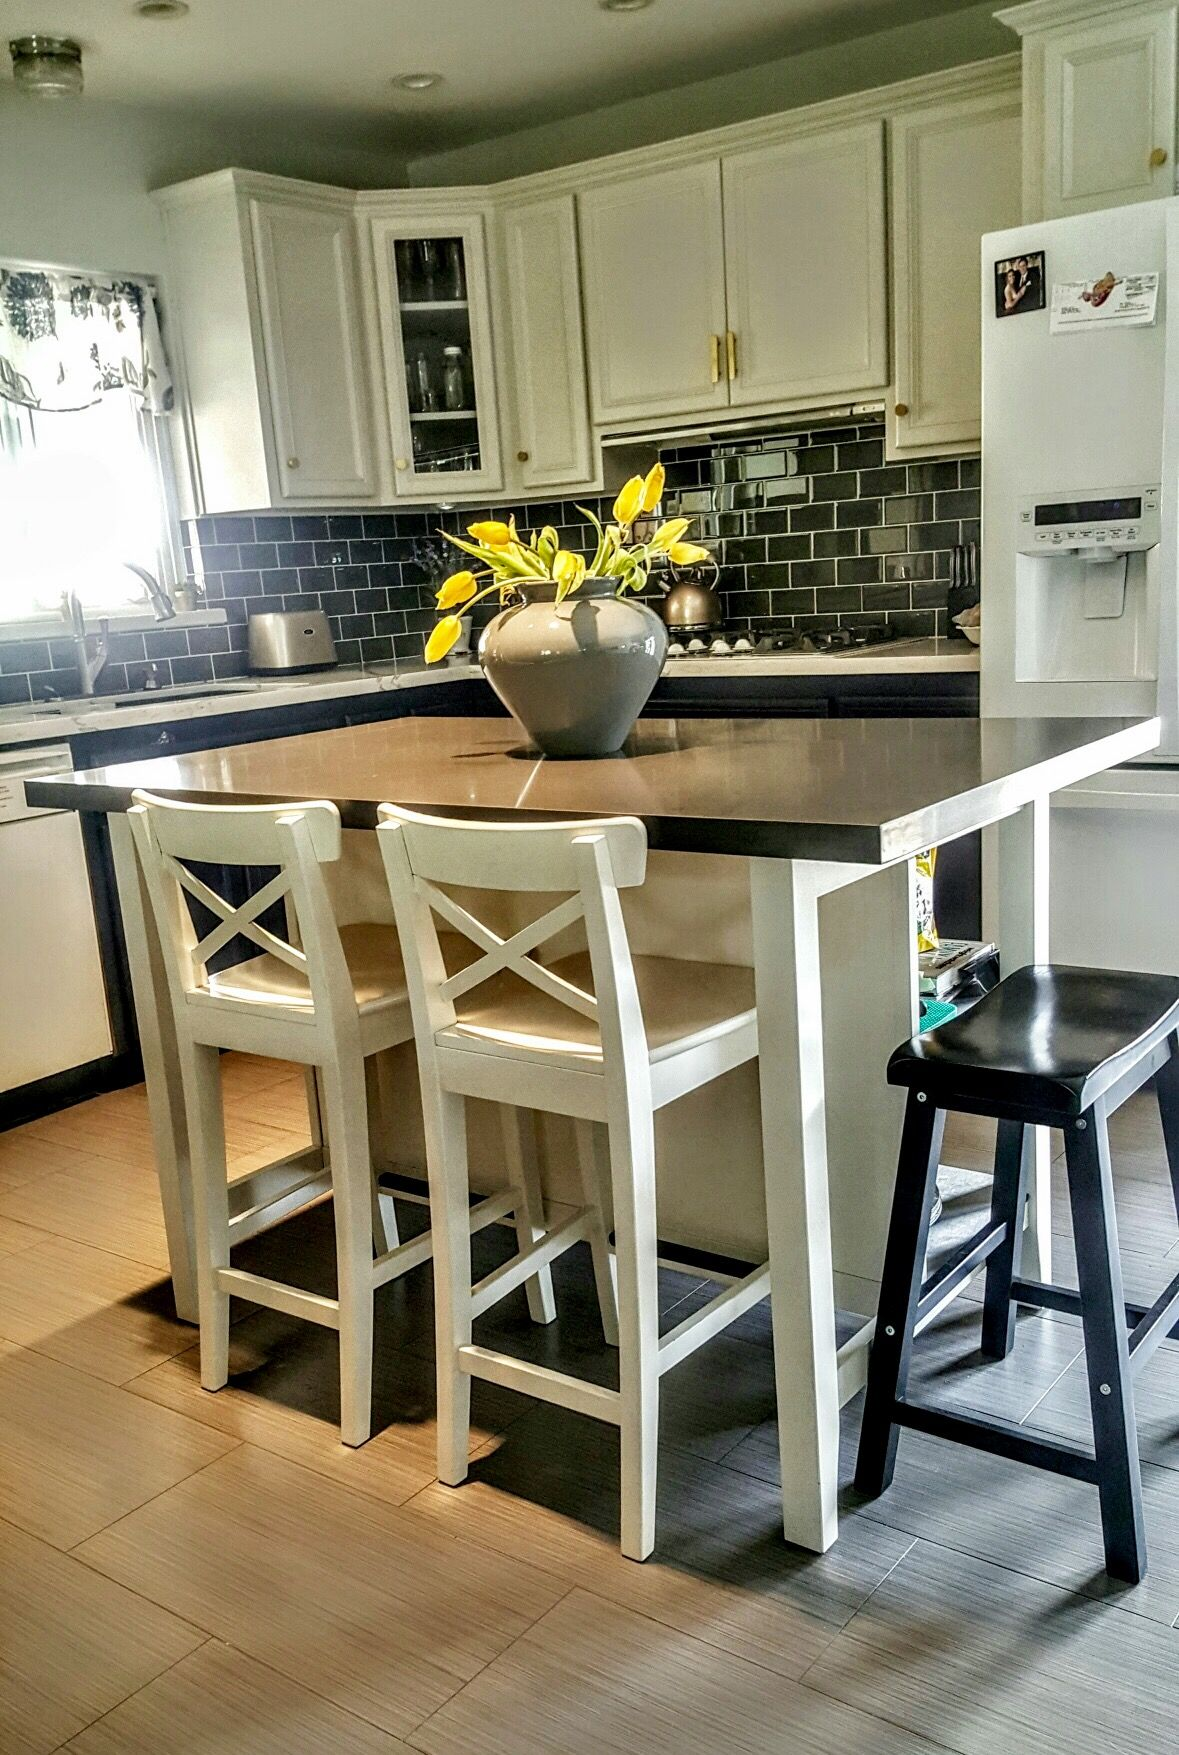 Ikea Stenstorp Kitchen Island Hack We Added Grey